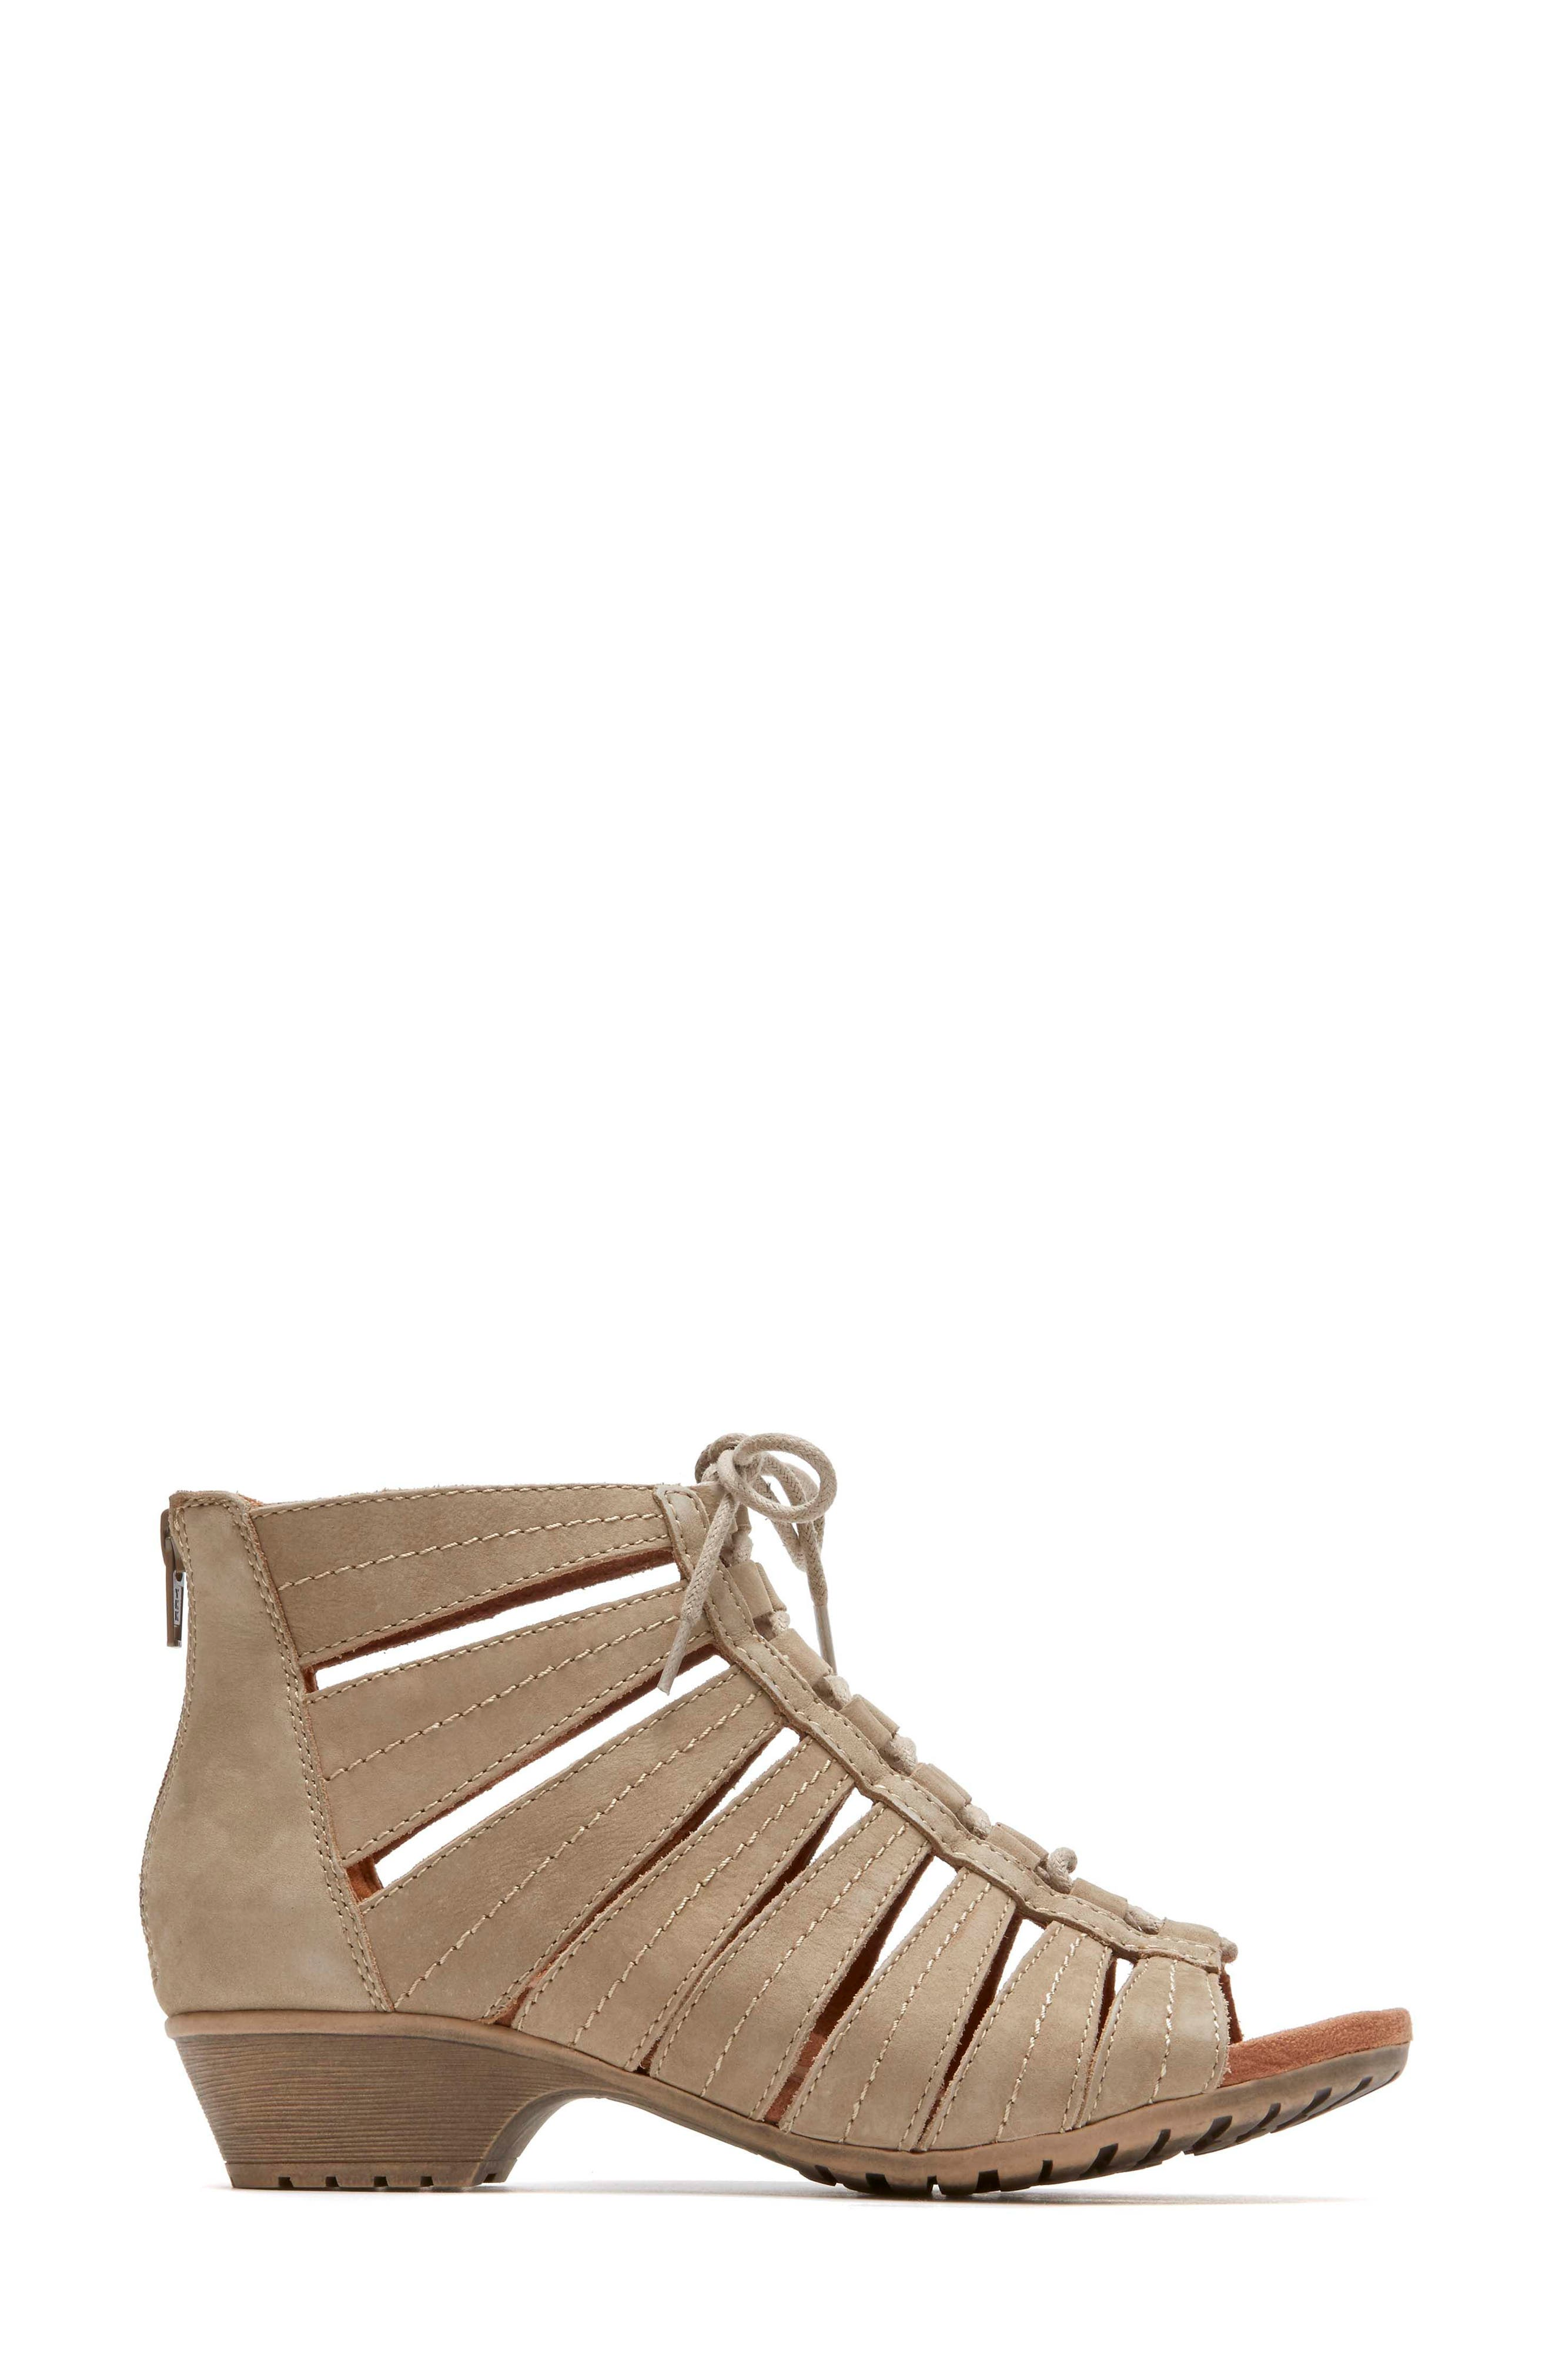 'Gabby' Lace-Up Sandal,                             Alternate thumbnail 17, color,